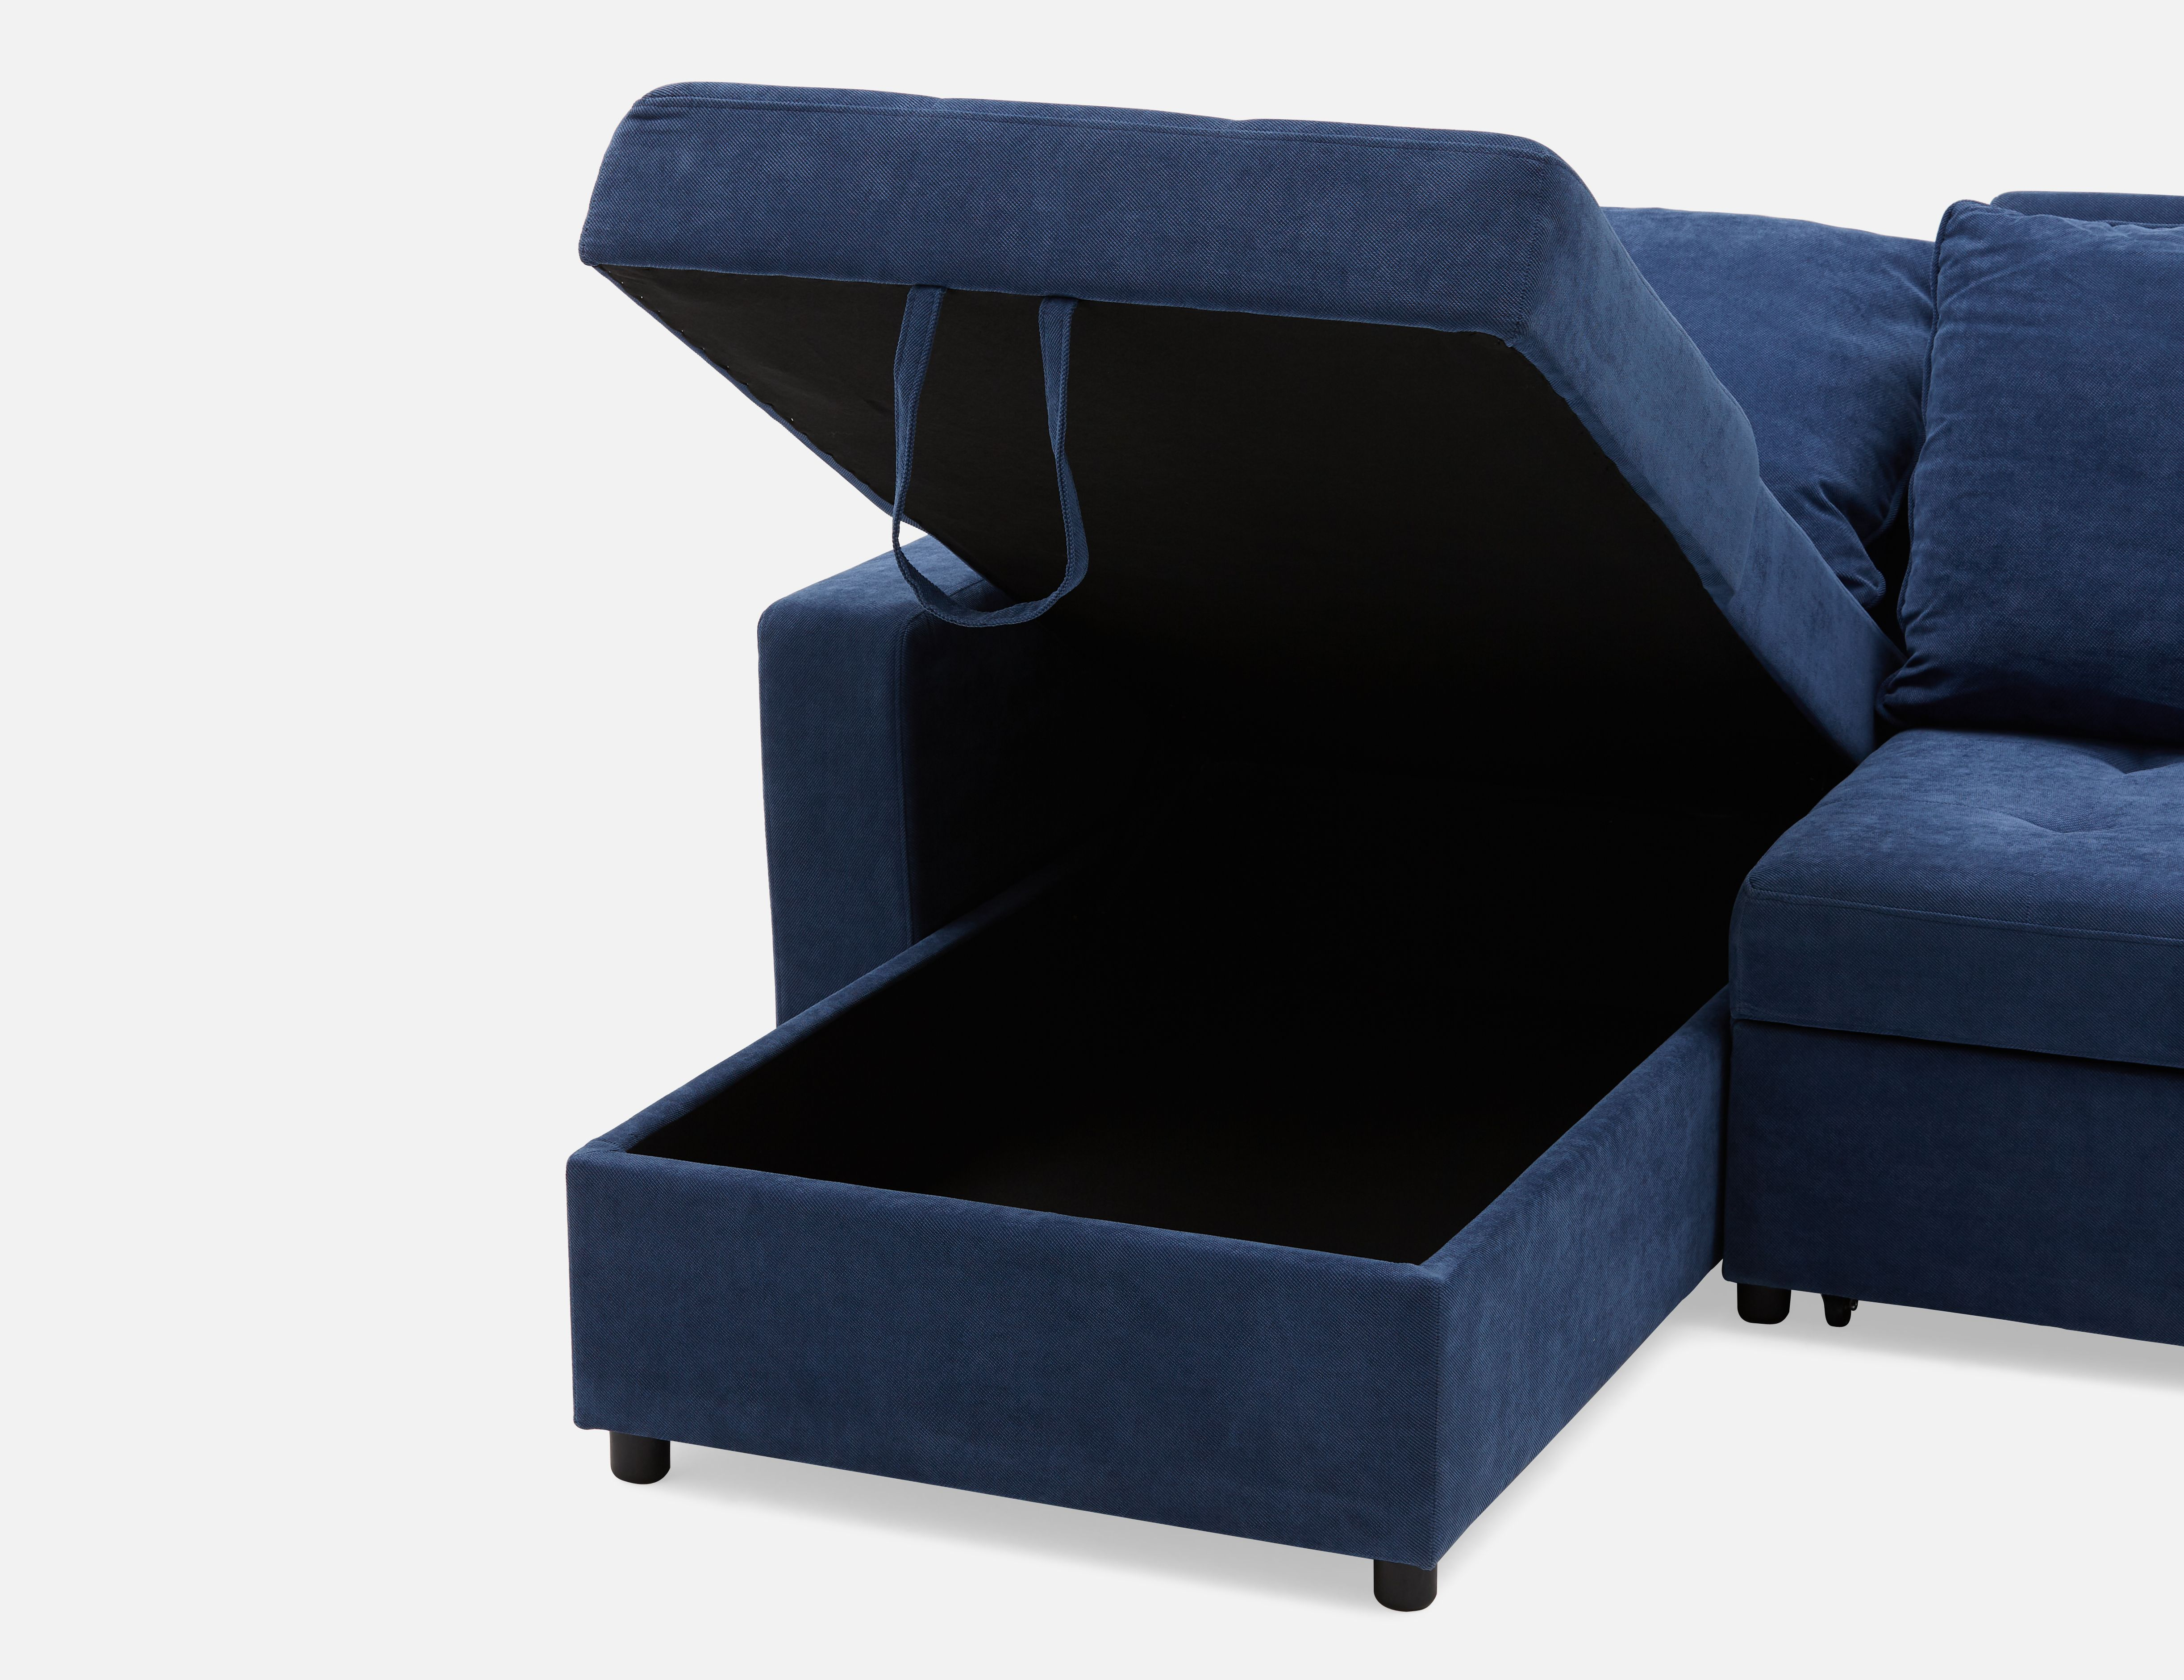 Outstanding Megan Dark Blue Interchangeable Sectional Sofa Bed Struc Unemploymentrelief Wooden Chair Designs For Living Room Unemploymentrelieforg